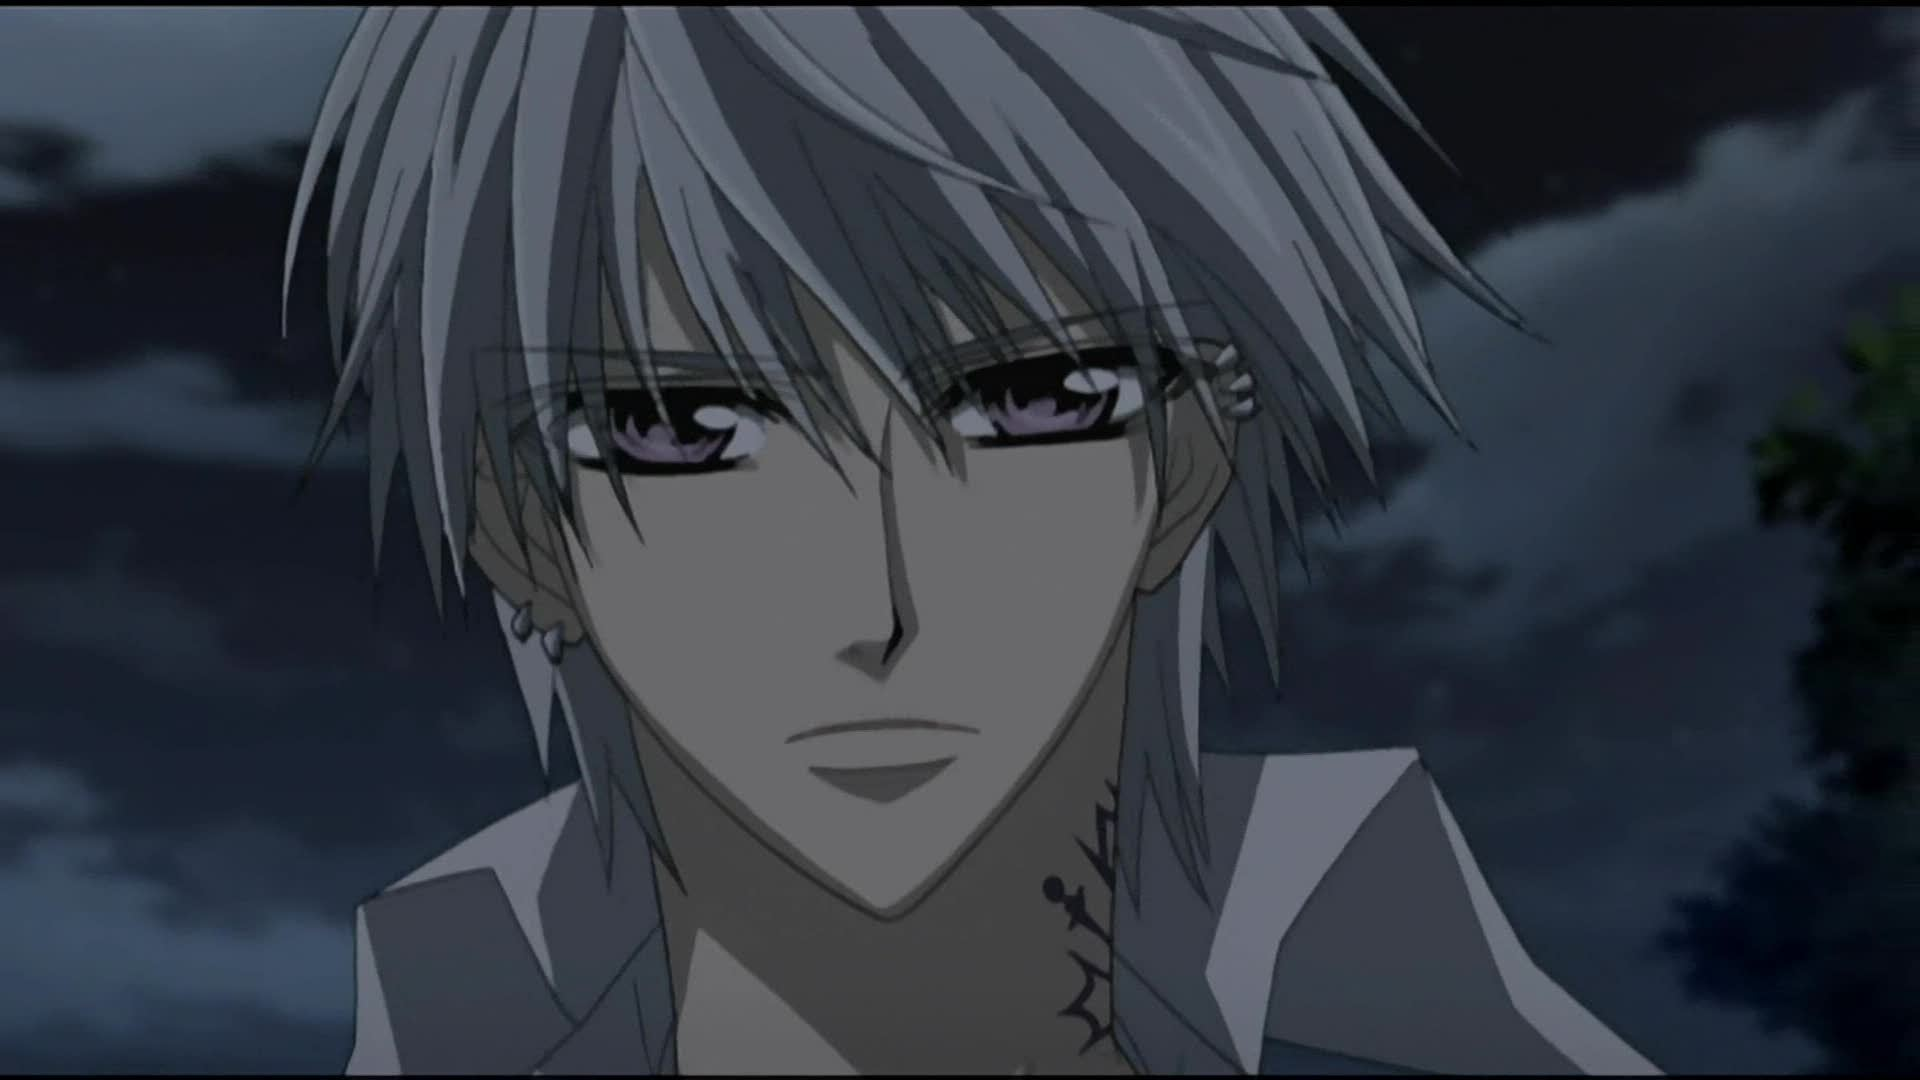 Zero-Kiryuu-In-Vampire-Knight-Guilty-Episode-1-Sinners-Of-Fate-anime-guys-20573756-1920-1080